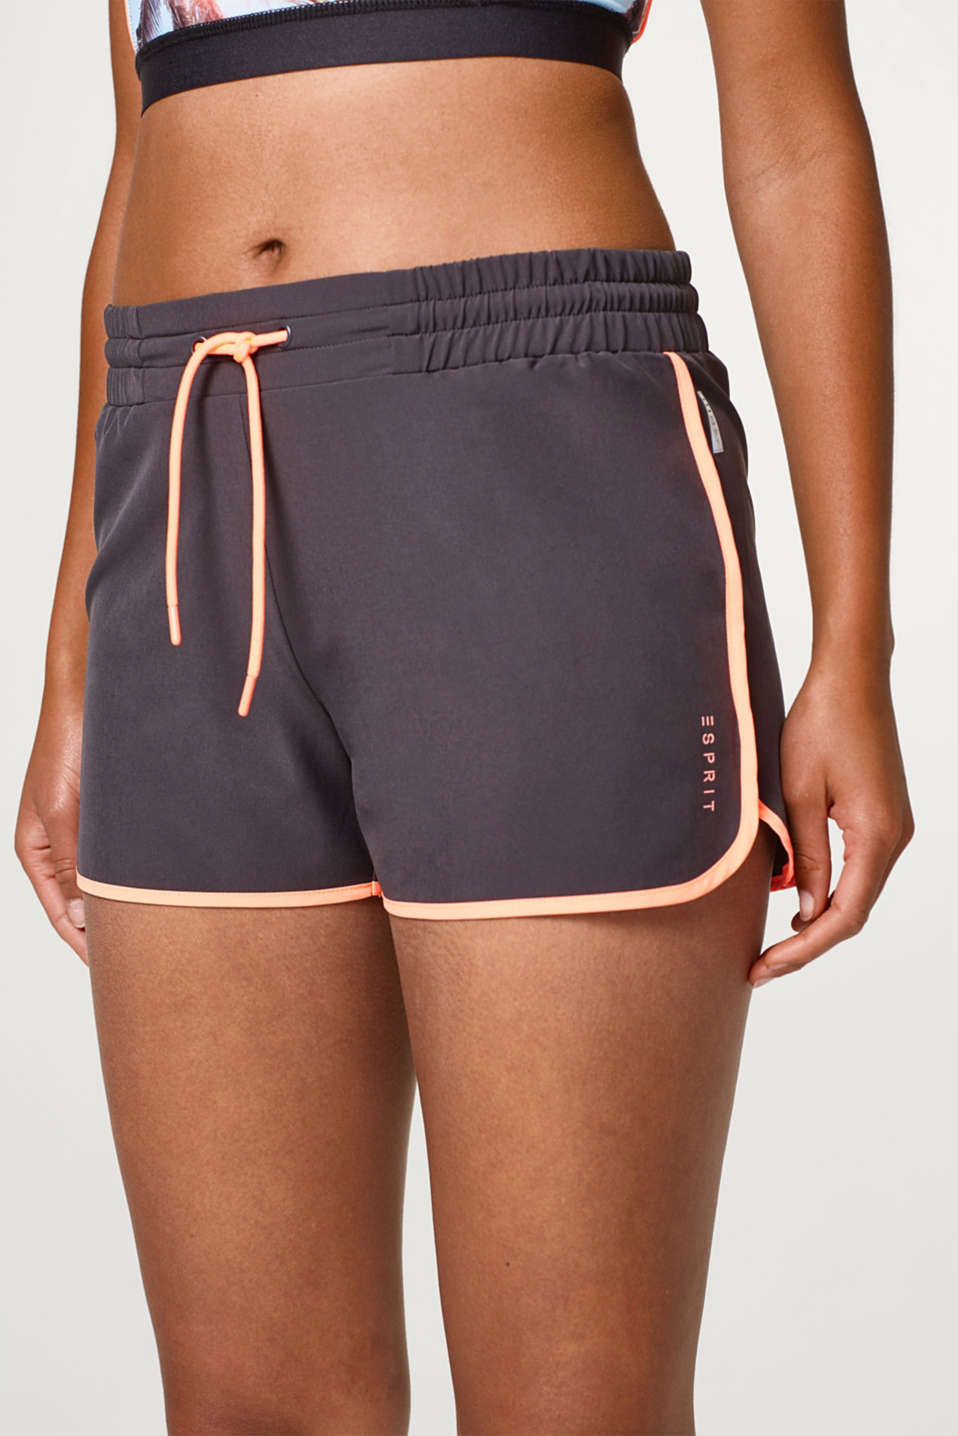 Active shorts with neon details, E-DRY